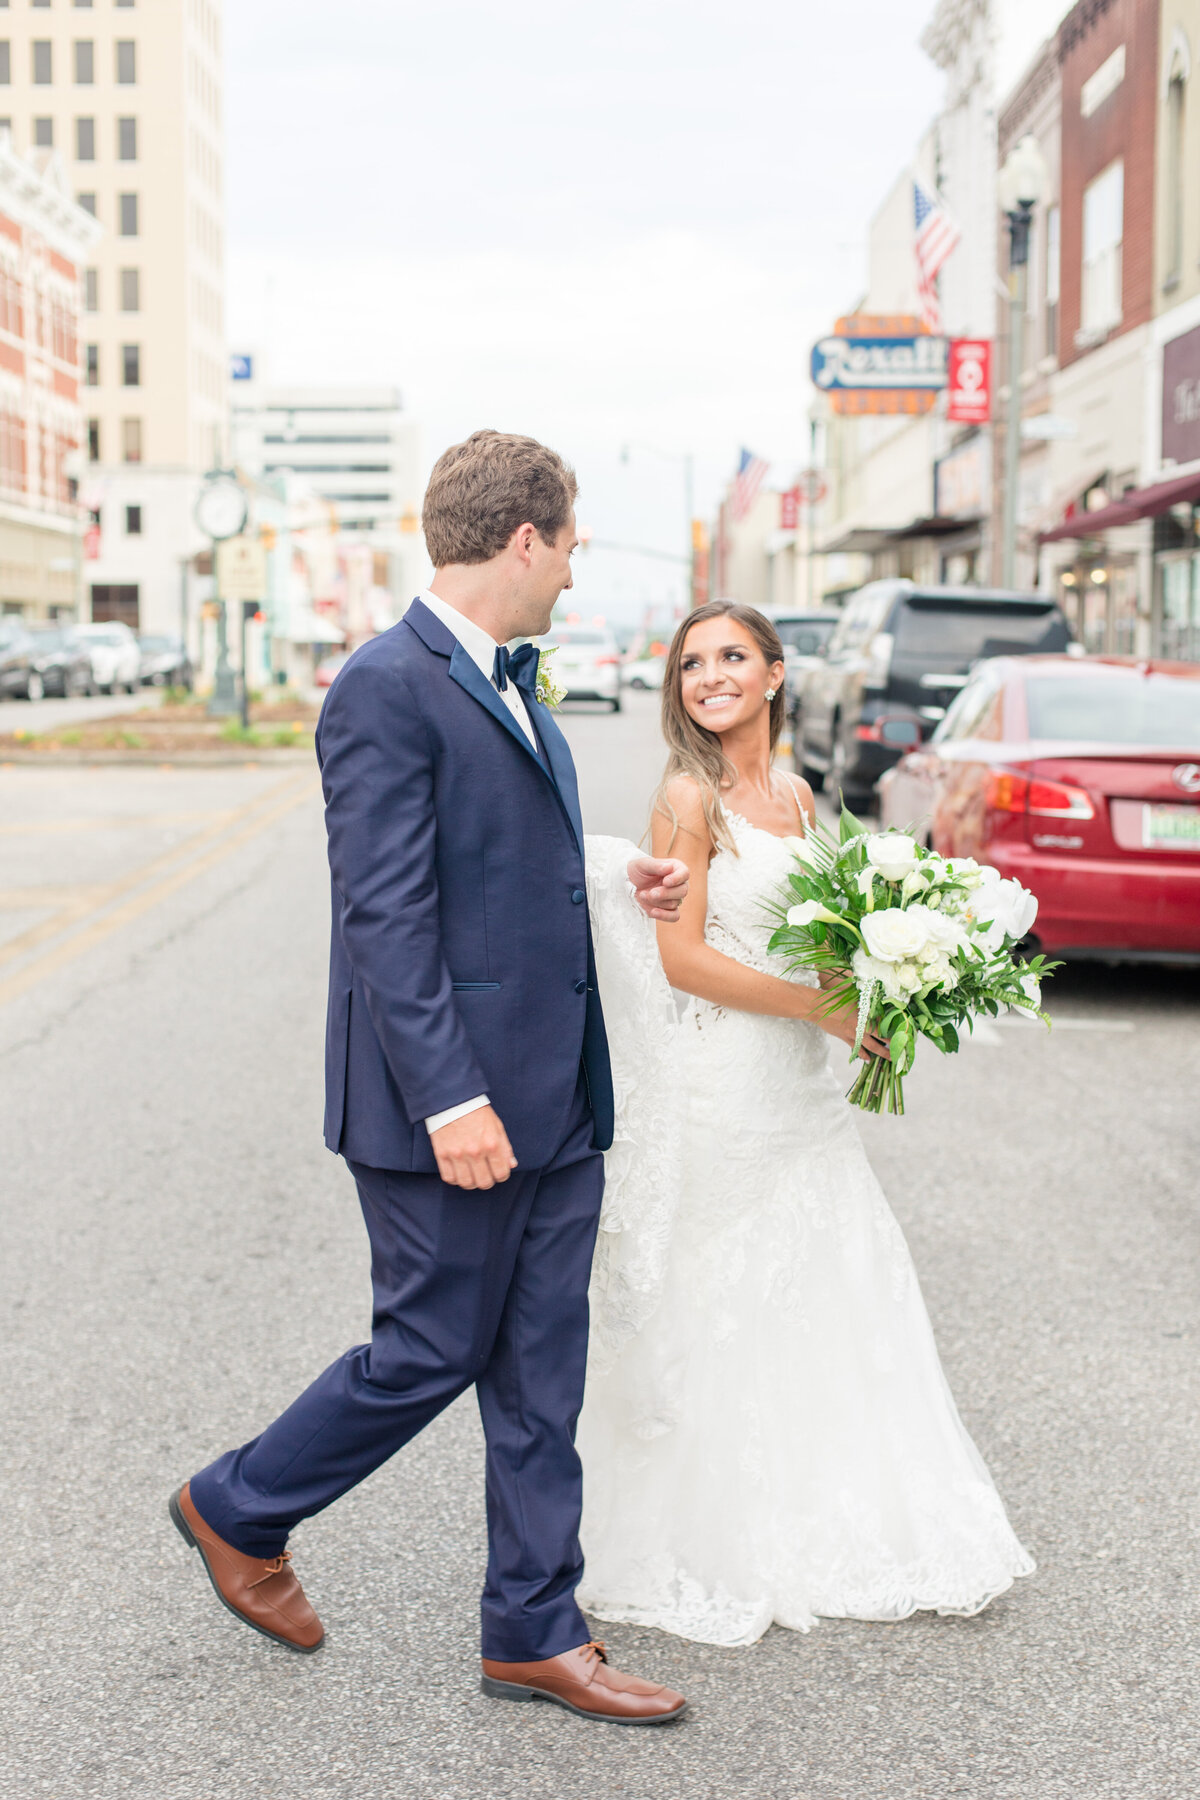 Birmingham, Alabama Wedding Photographers - Katie & Alec Photography Featured Gallery 108